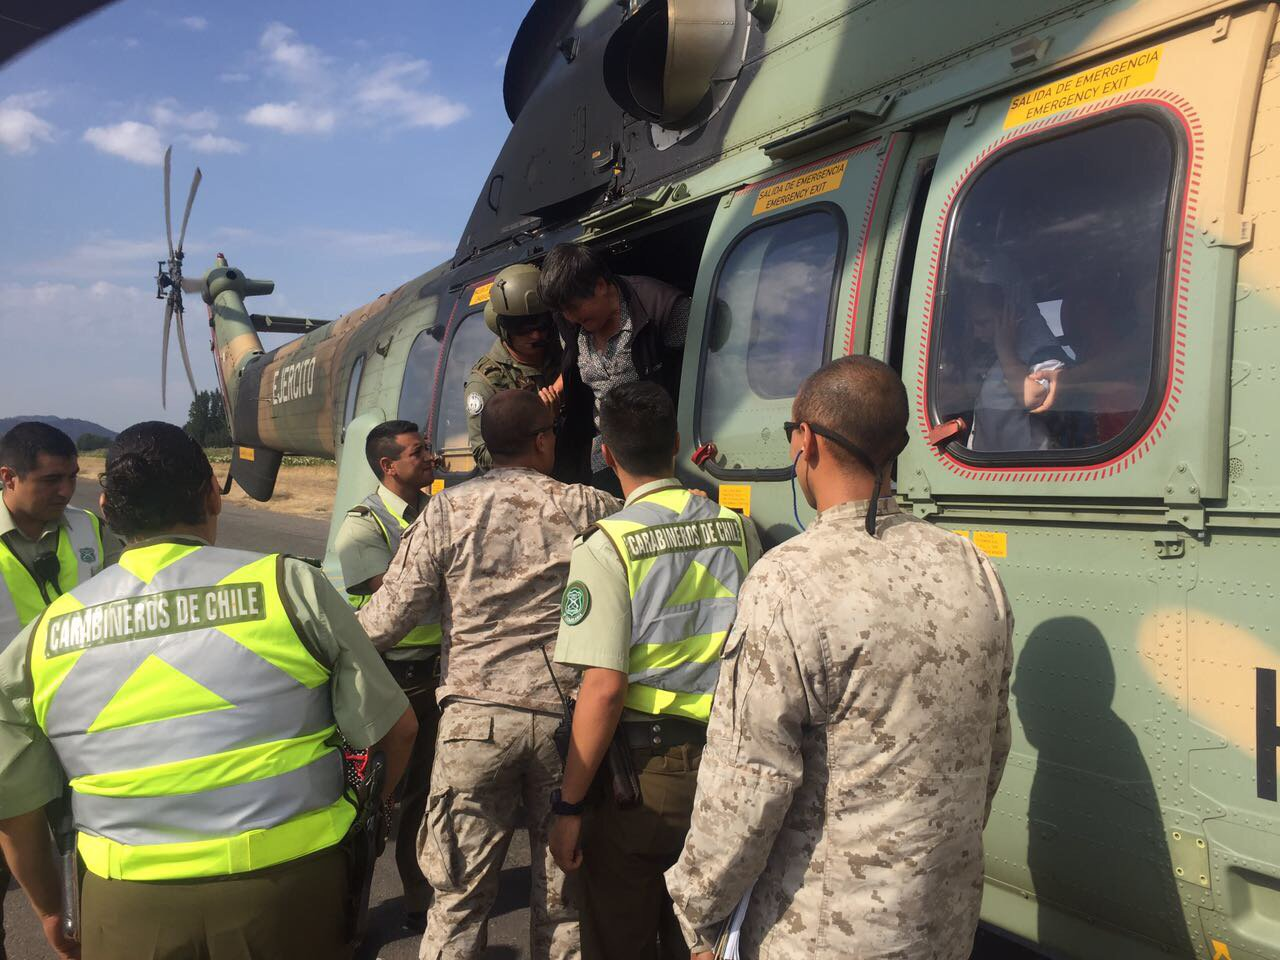 A pilot's account of the helicopter rescue effort after floods in Chile